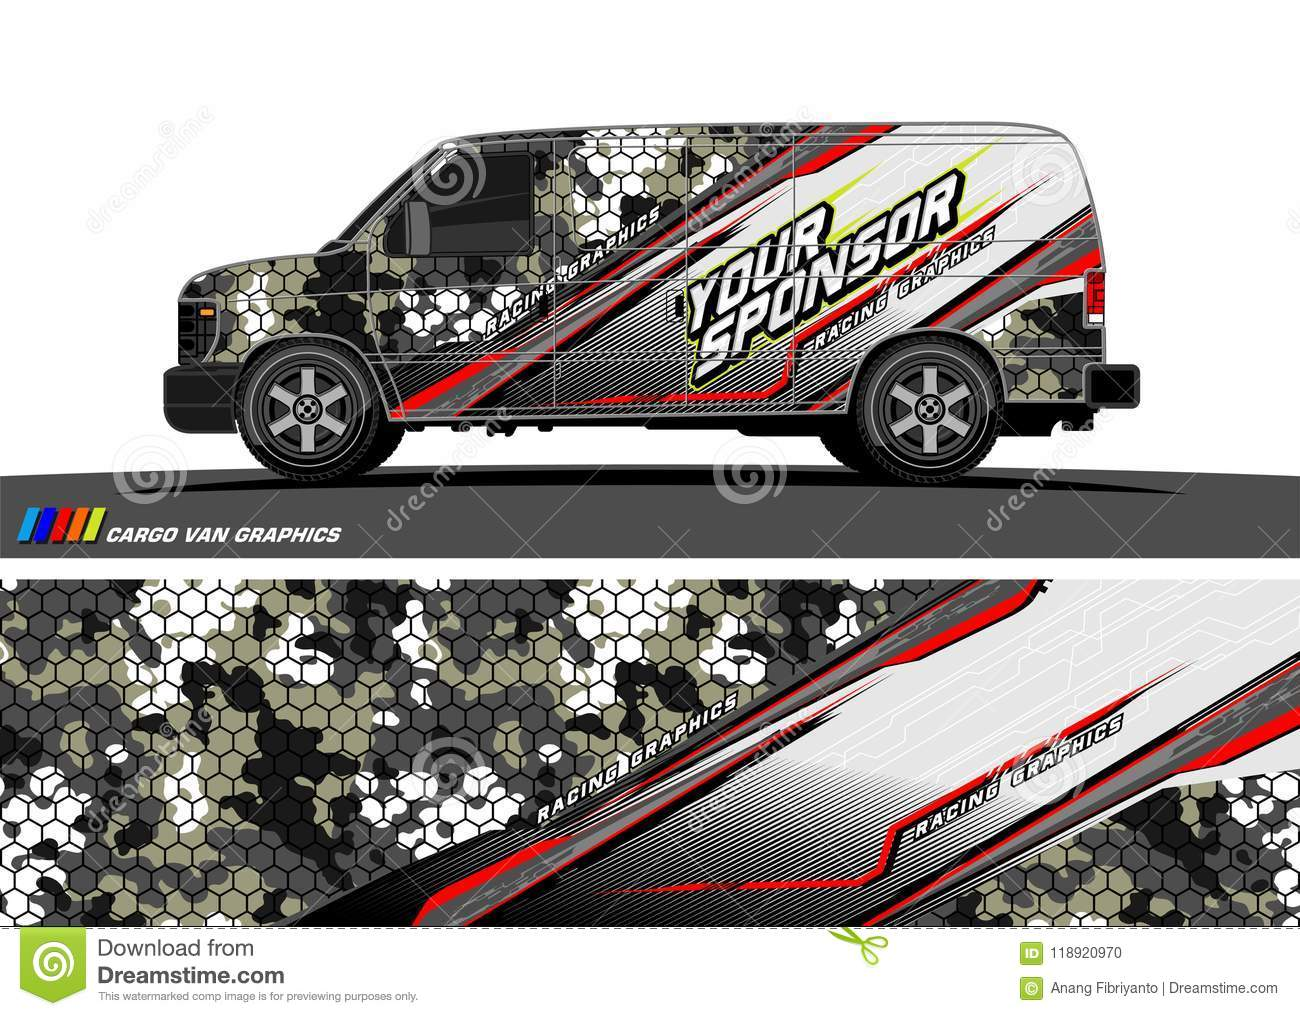 Car Decal Design Vector Abstract Background For Vehicle Vinyl Wrap